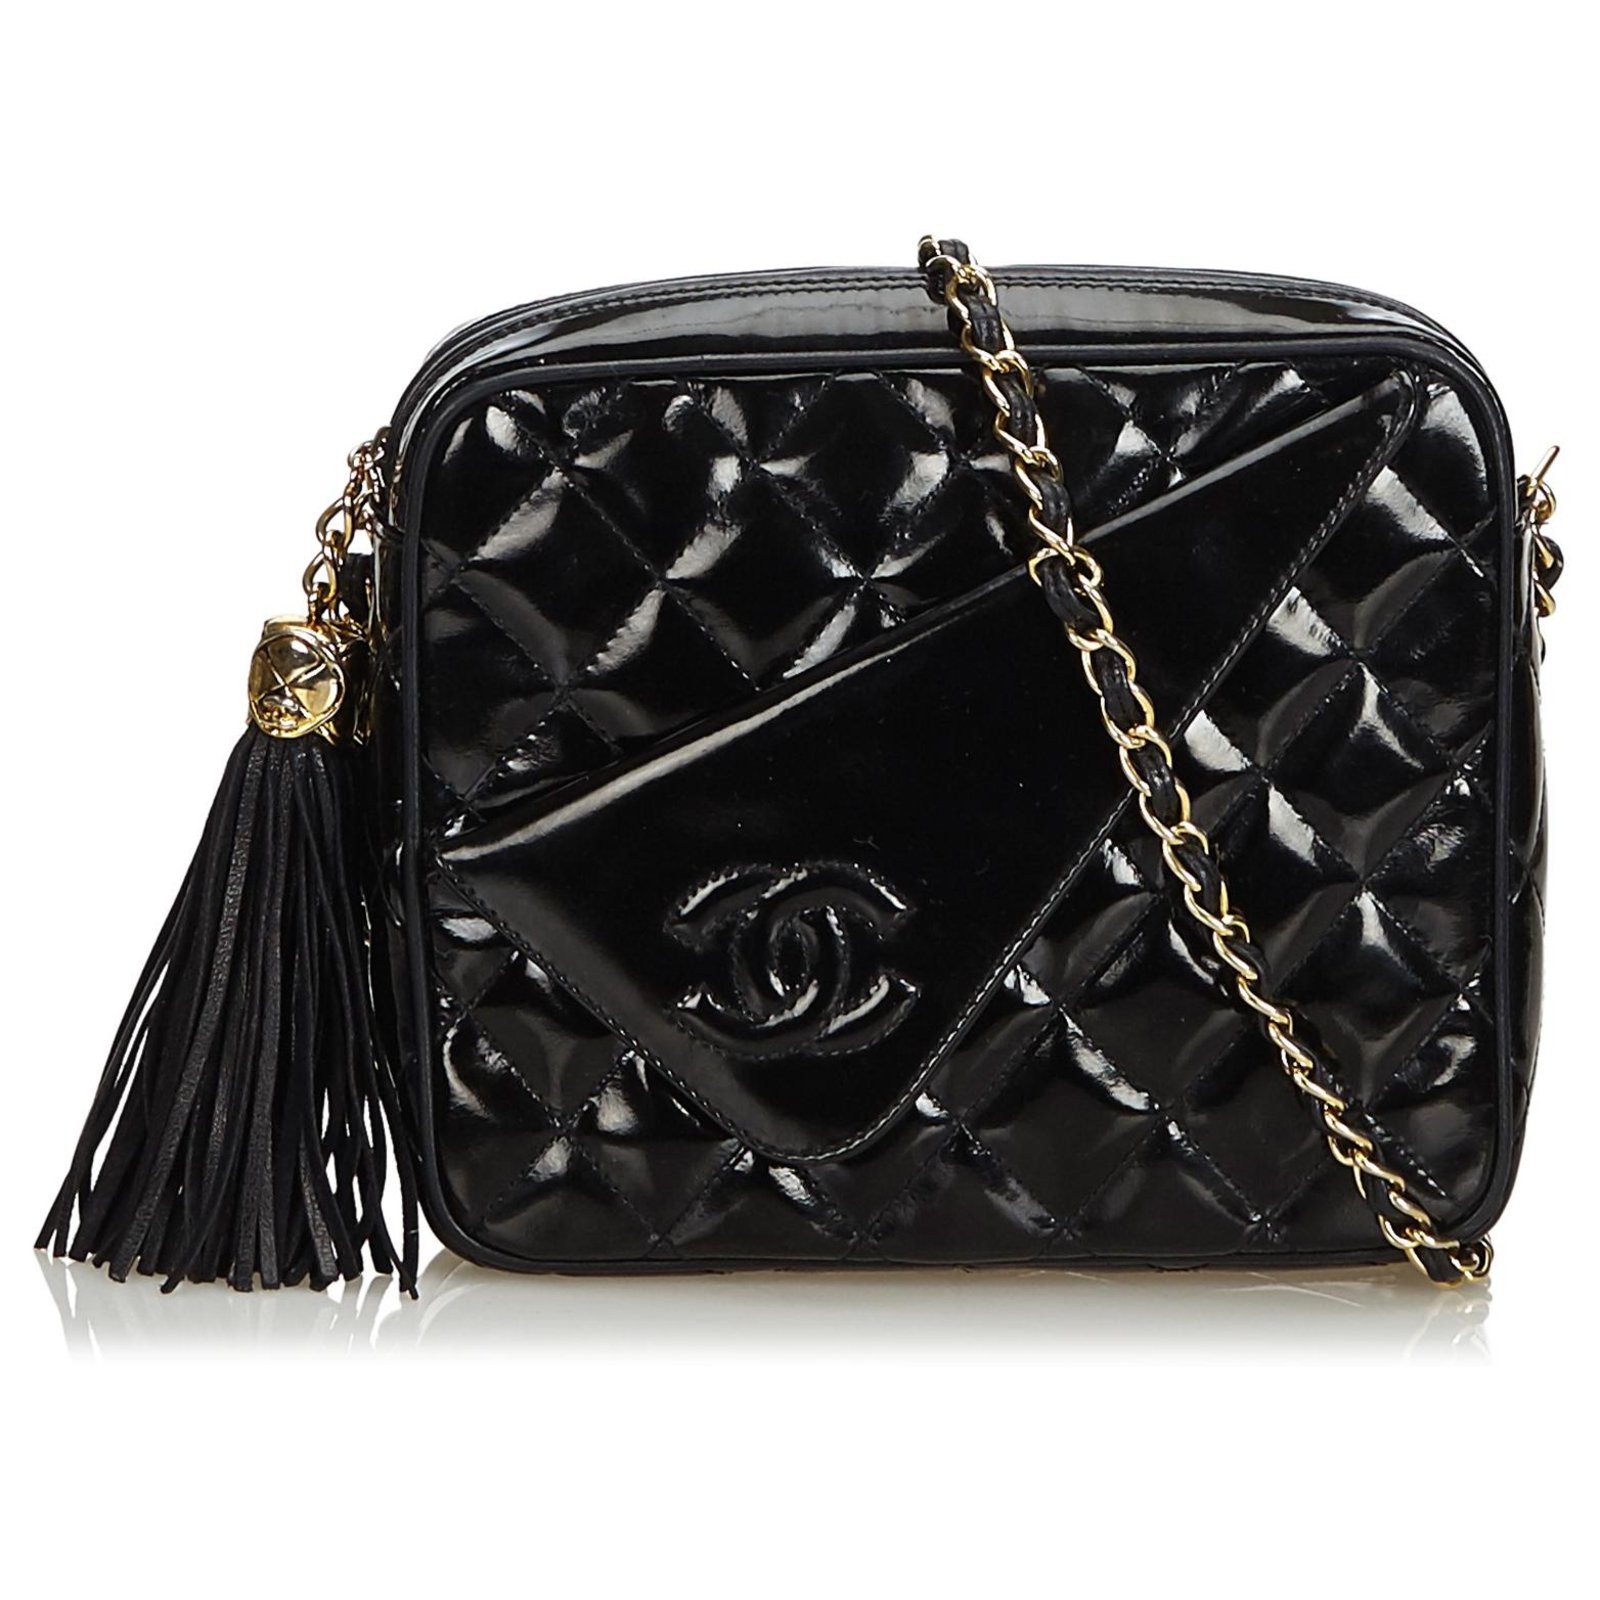 938e9bac43e5 Chanel Chanel Black Patent Leather Quilted Chain Camera Bag Handbags Leather ,Patent leather Black ref